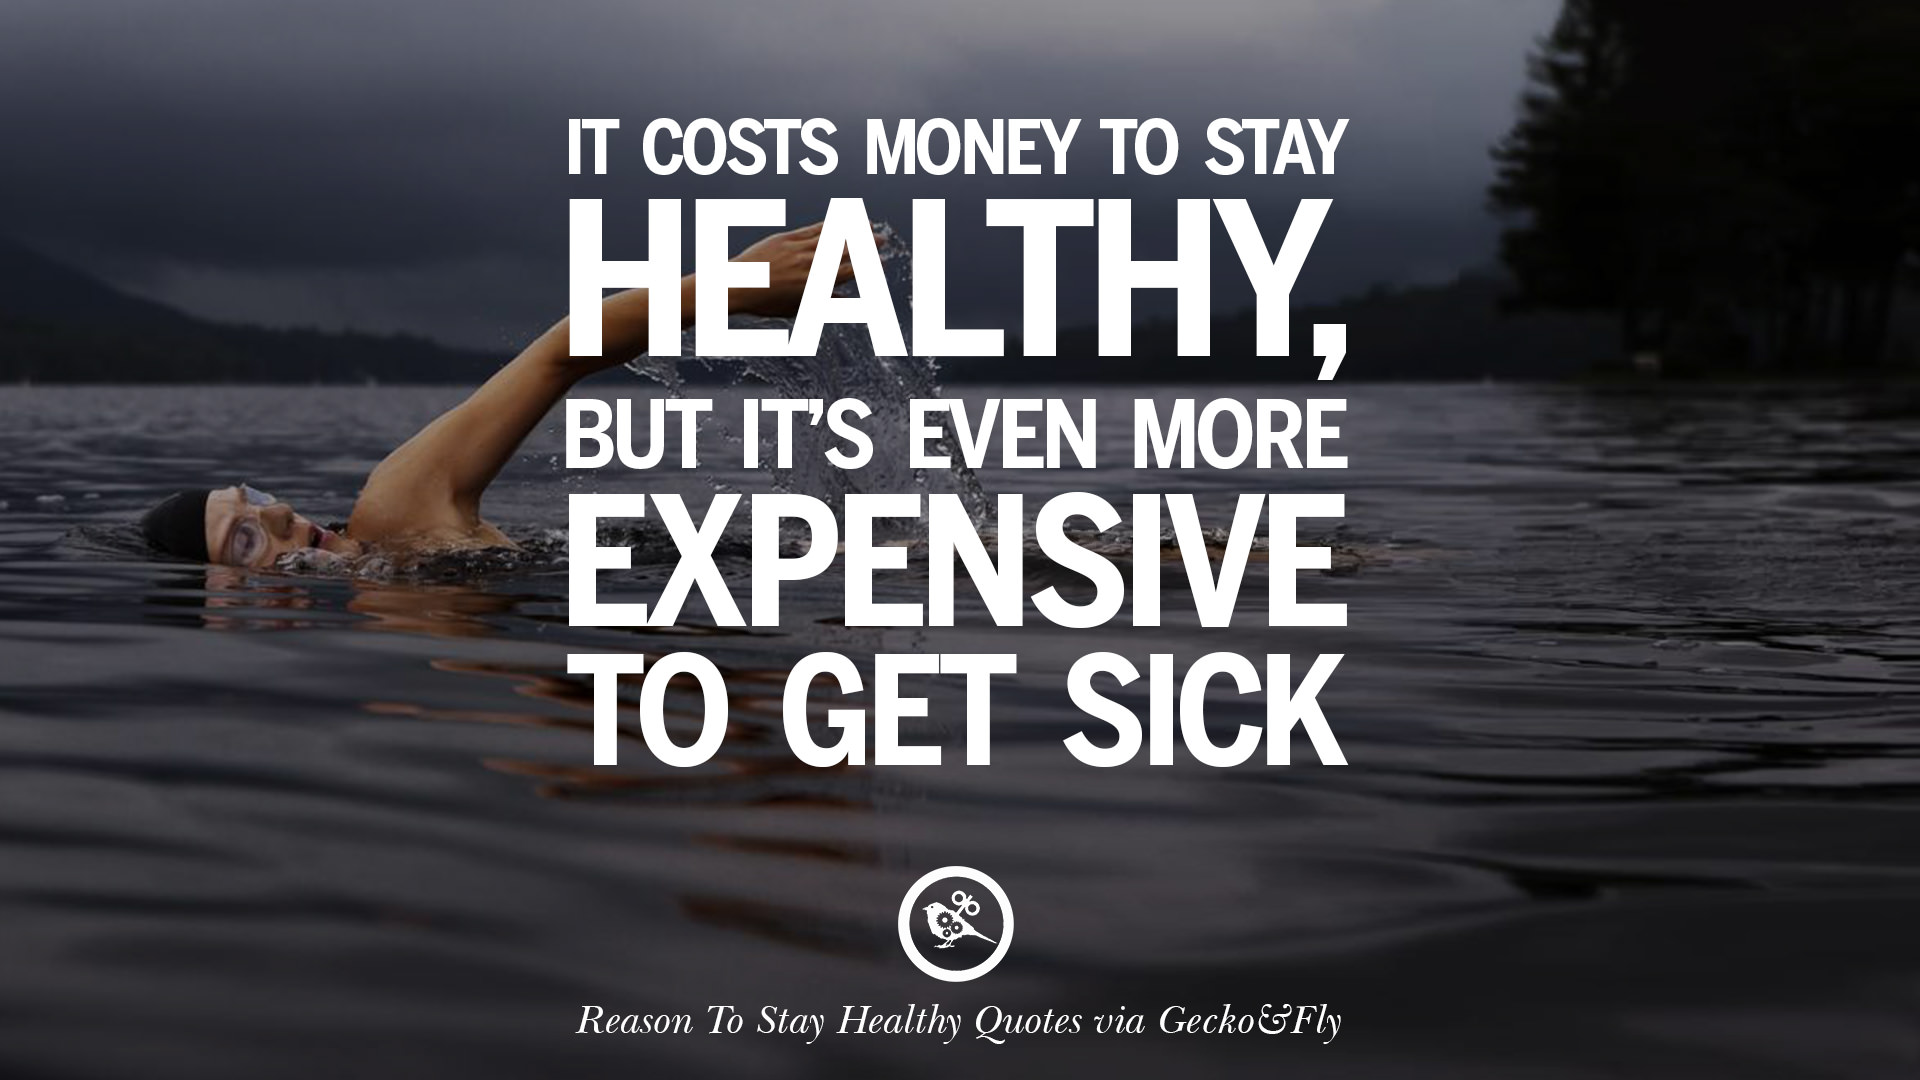 Health Quotes 10 Motivational Quotes On Reasons To Stay Healthy And Exercise